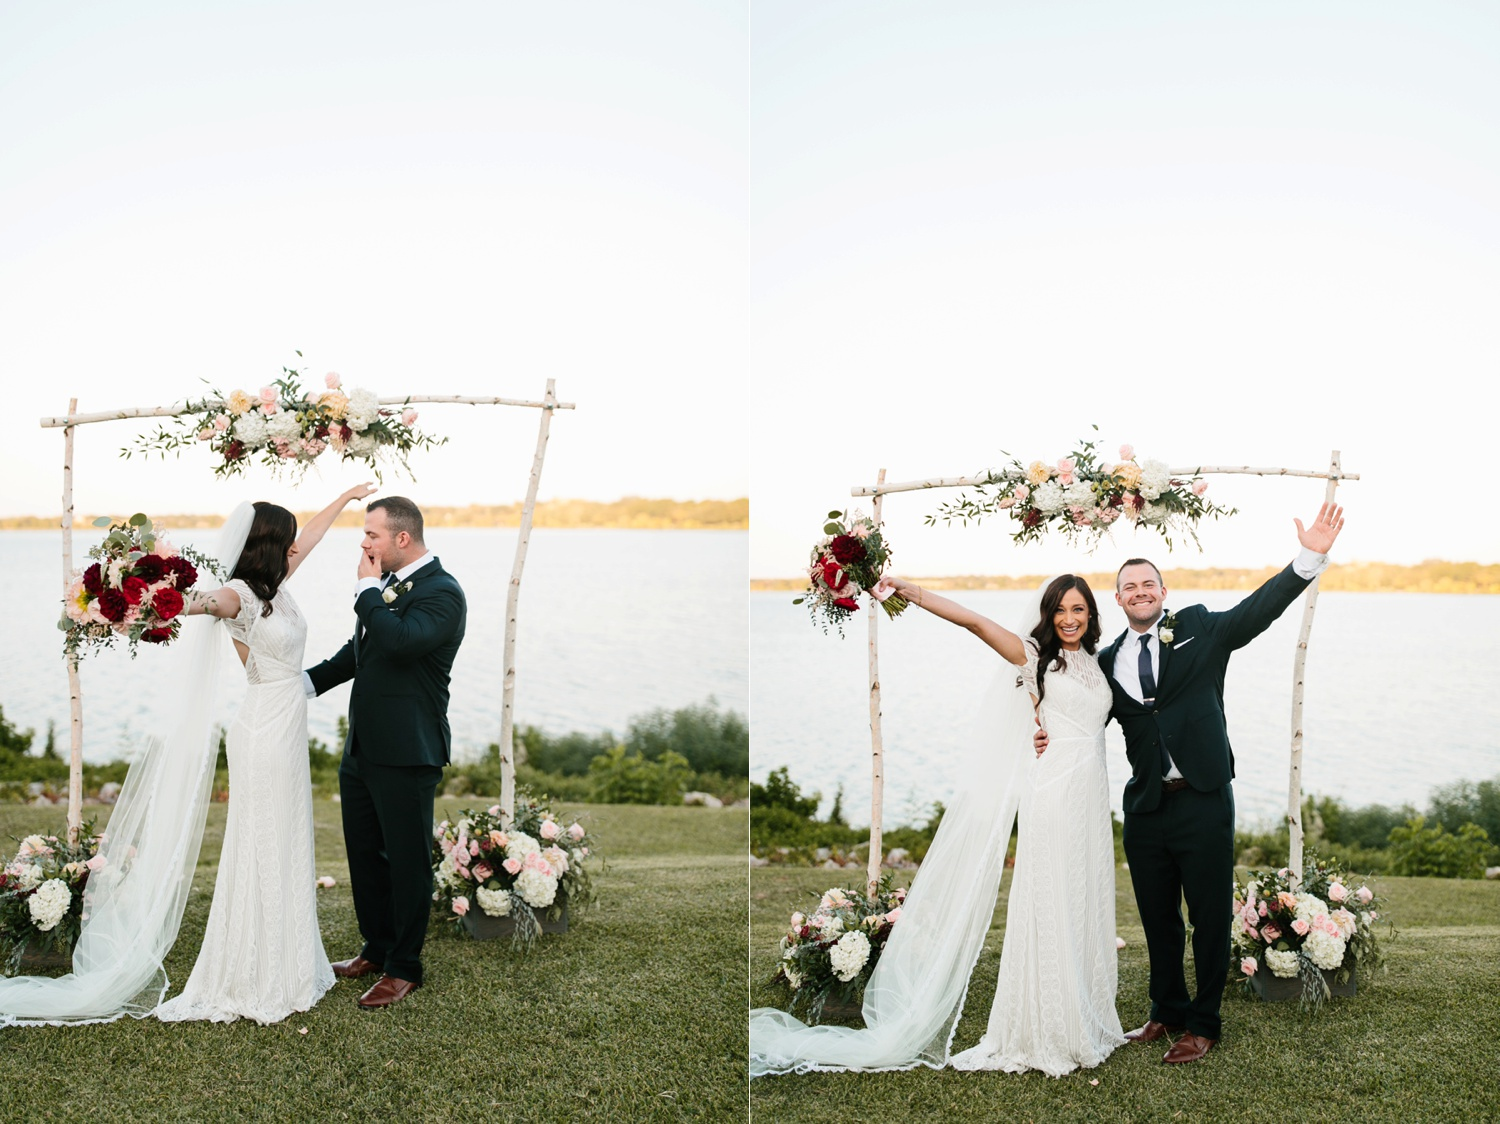 Kadee + Tyler | a raw, emotional wedding at the Filter Building on White Rock Lake in Dallas, TX by North Texas Wedding Photographer, Rachel Meagan Photography 154